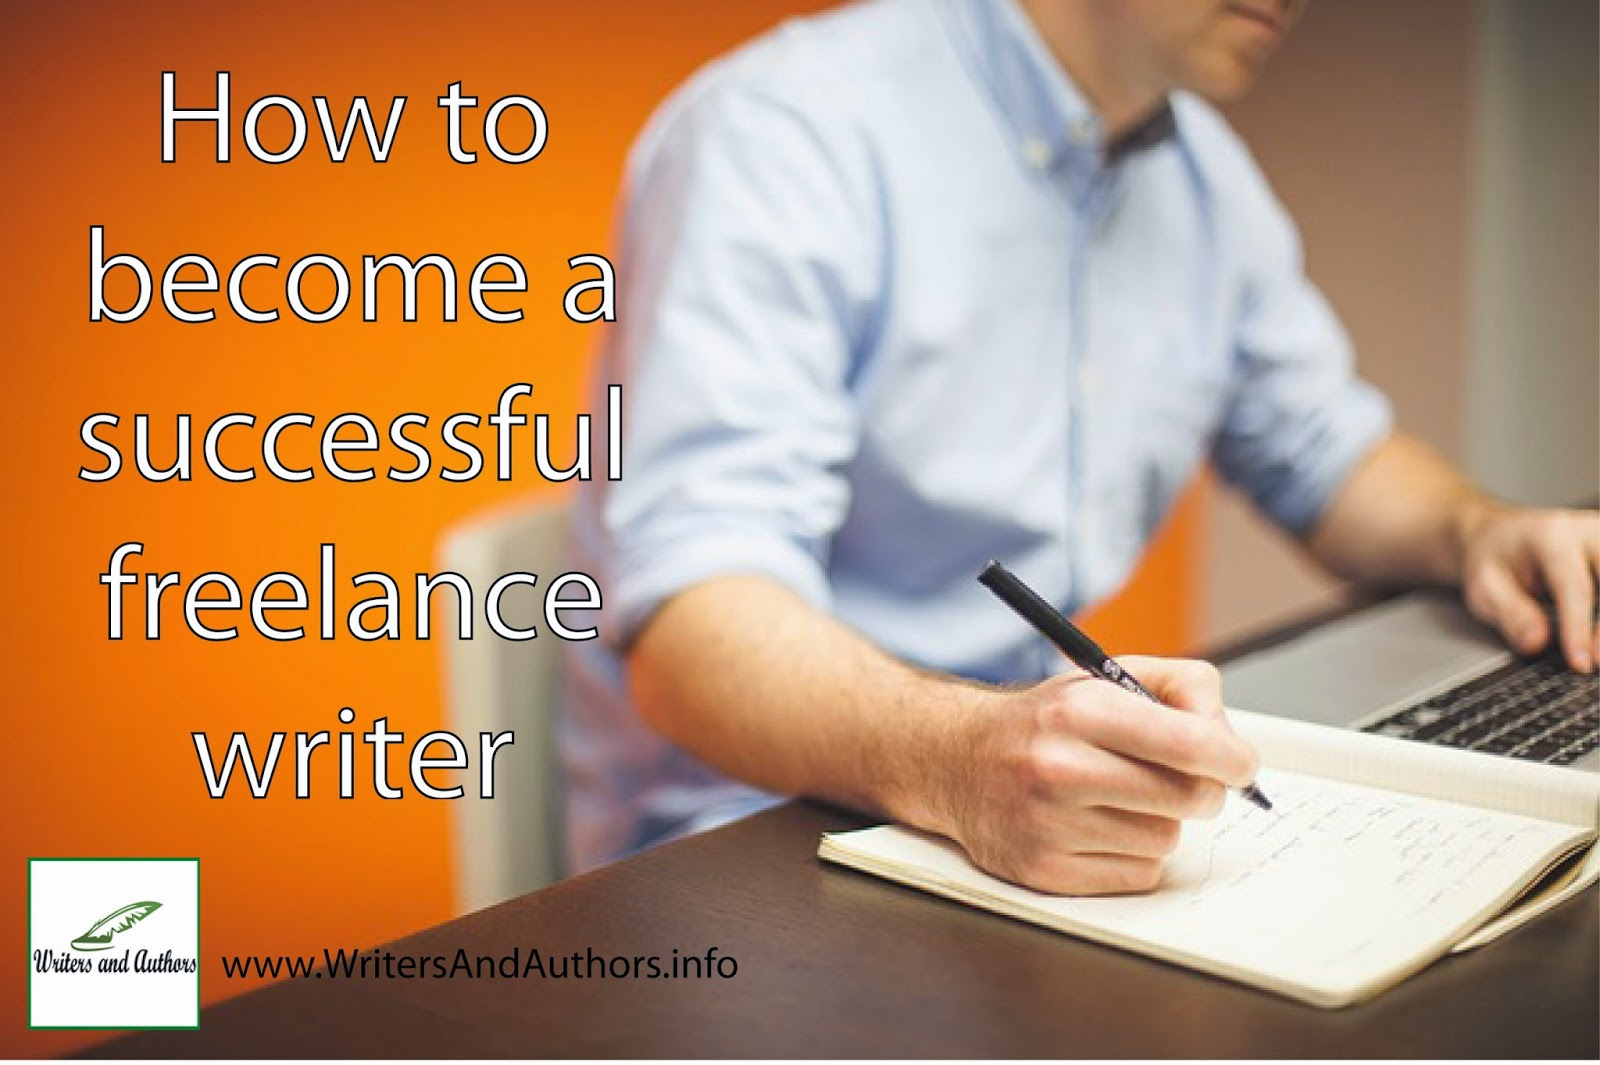 How to become a successful freelance writer, www.WritersAndAuthors.info